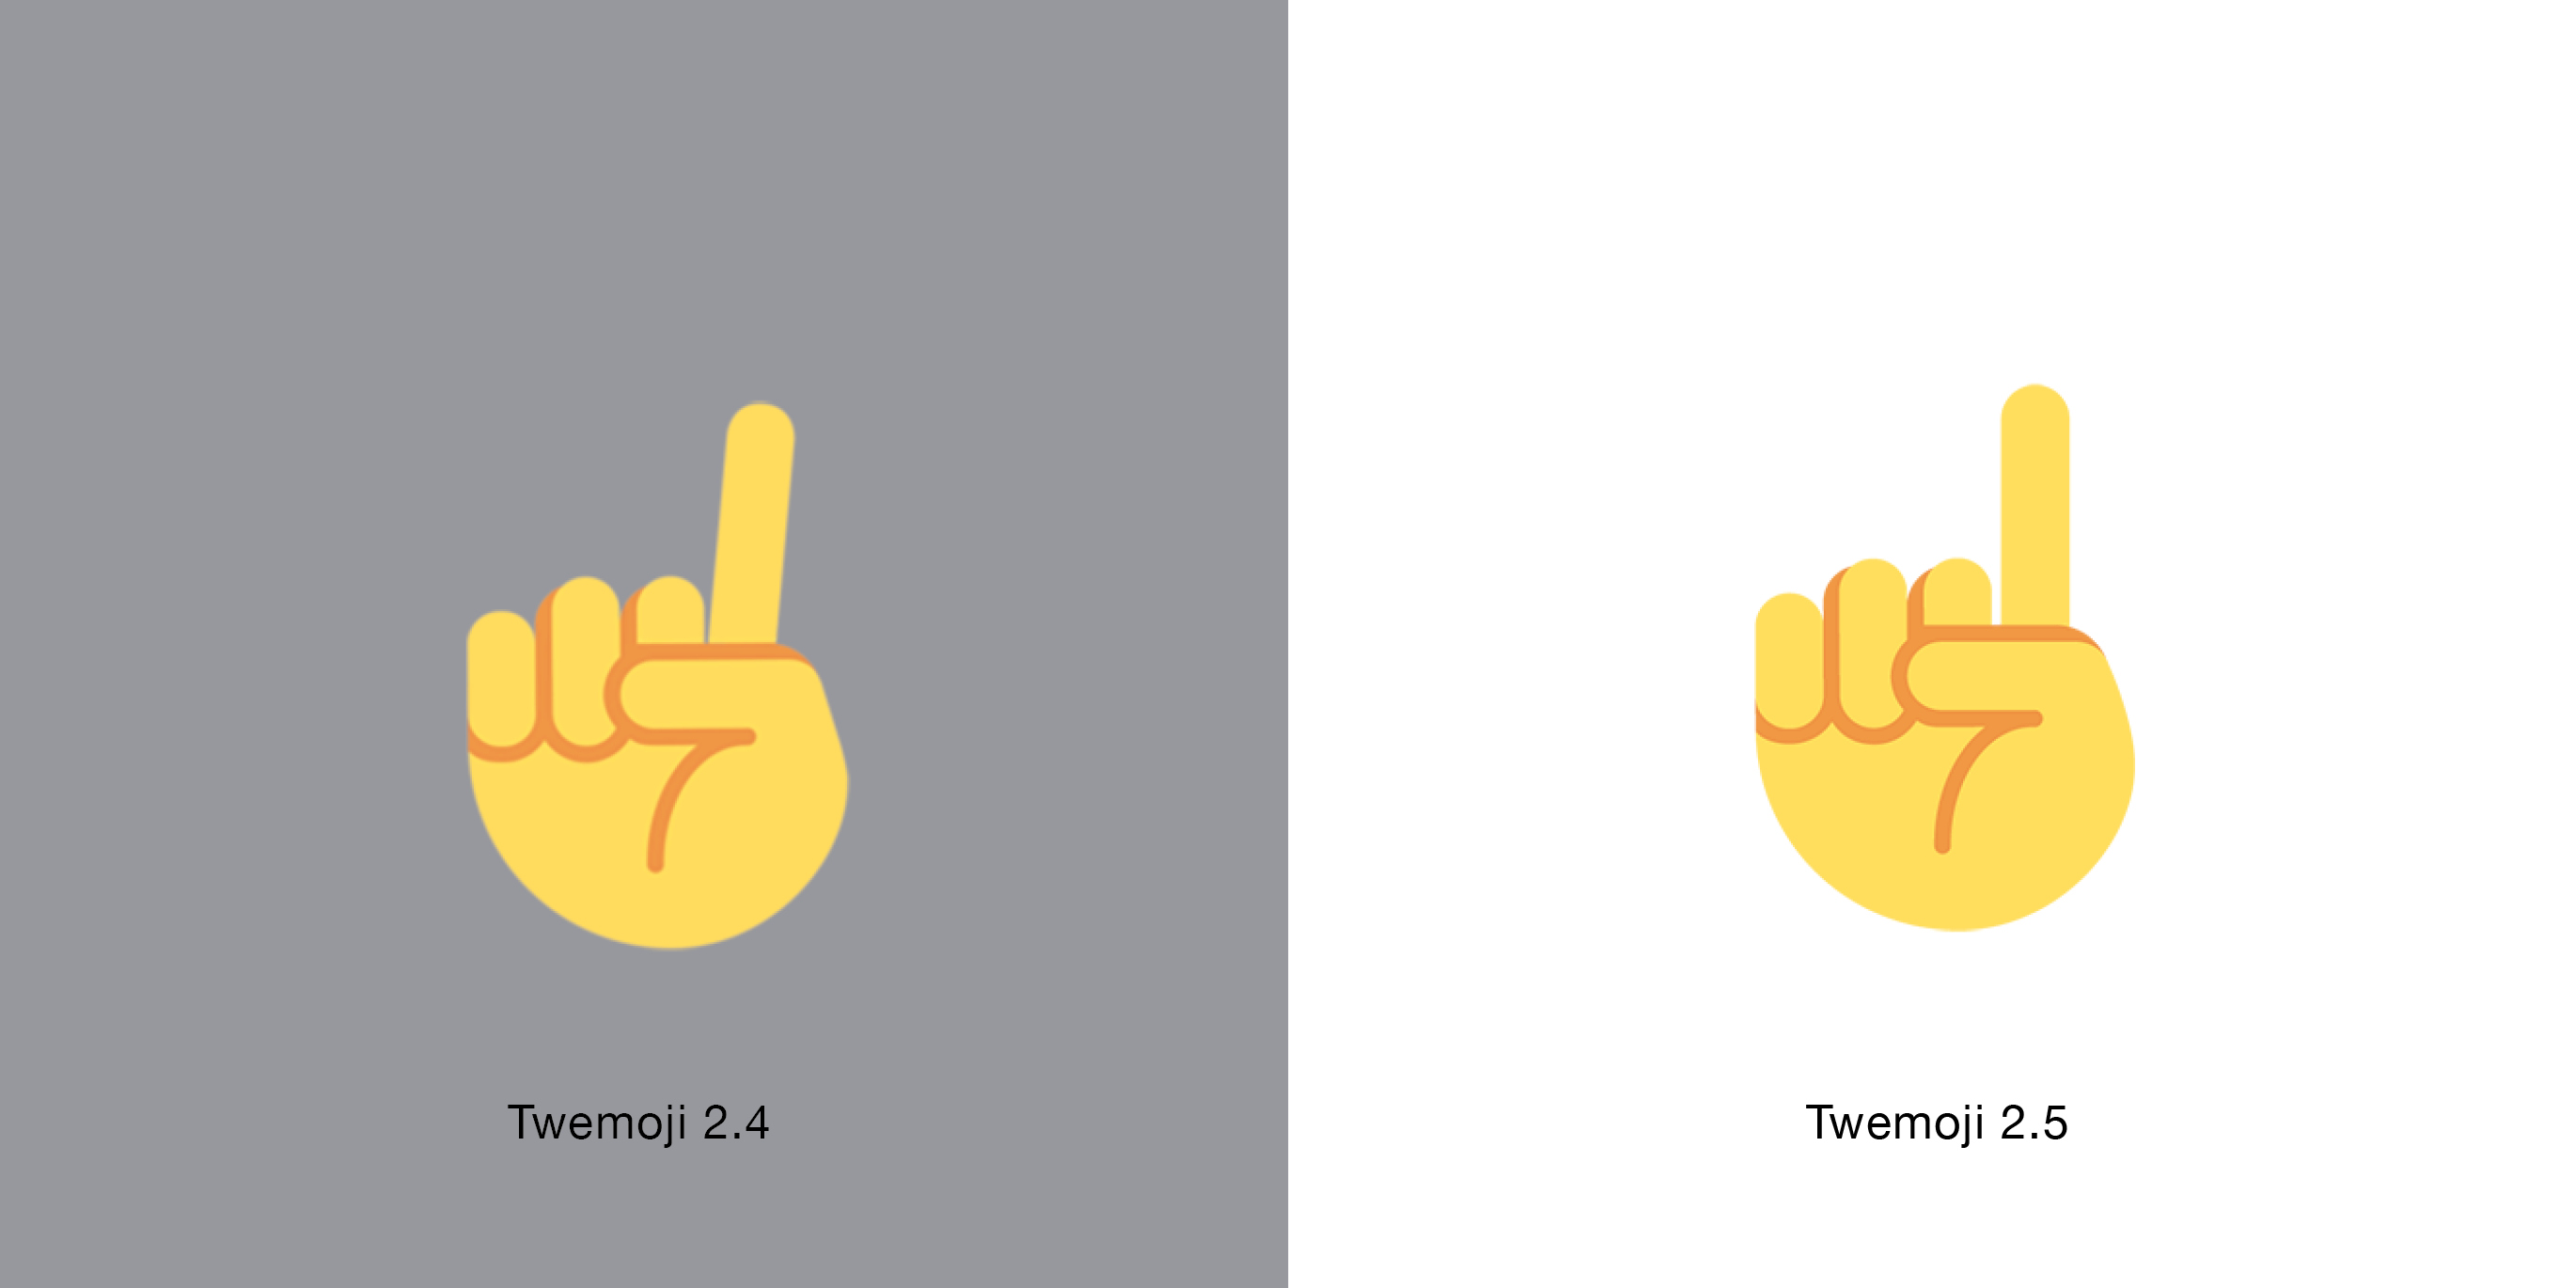 index-pointing-up-2.5-emojipedia-twittertwemoji-emojipedia-1